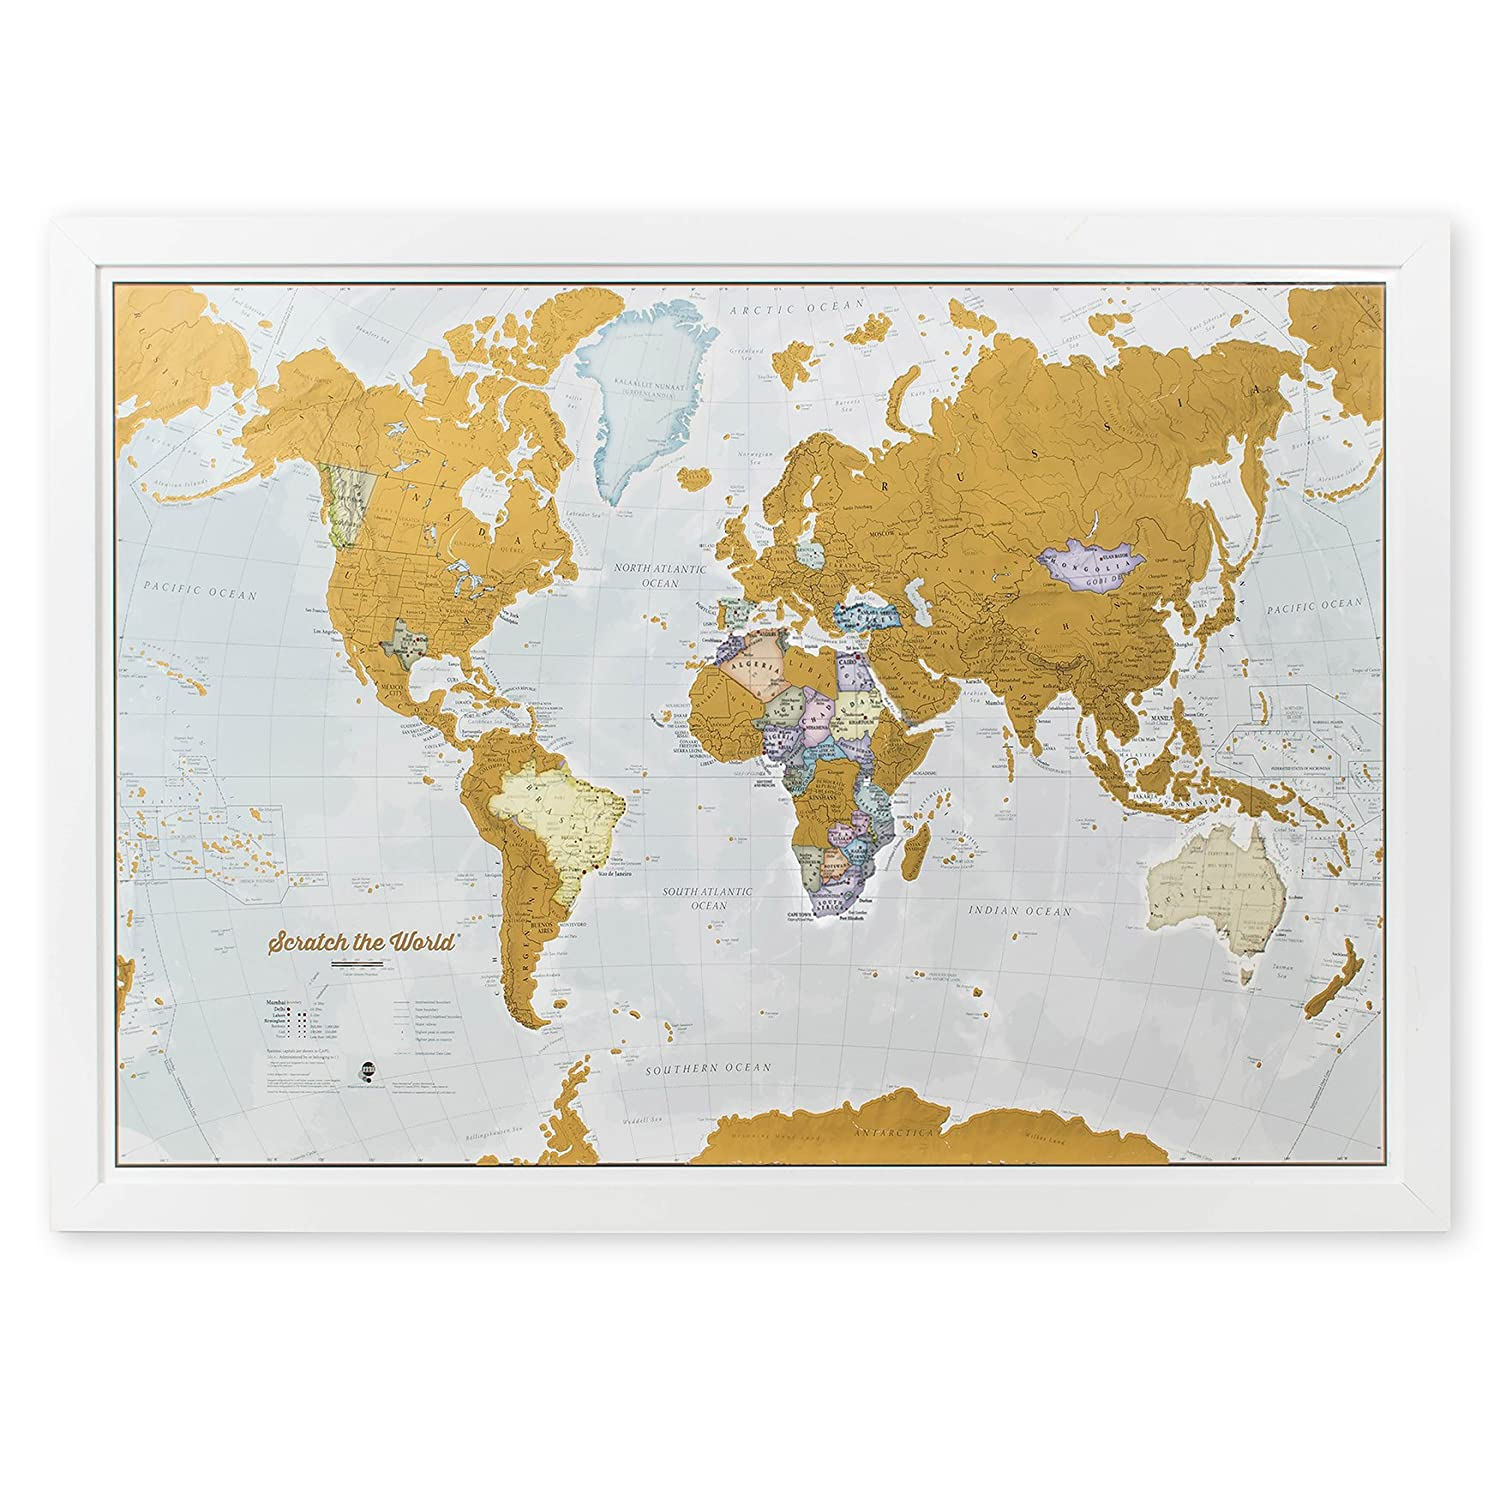 Maps International Scratch The World Travel Map – Scratch Off World Map Poster – Most Detailed Cartography - 33 x 23